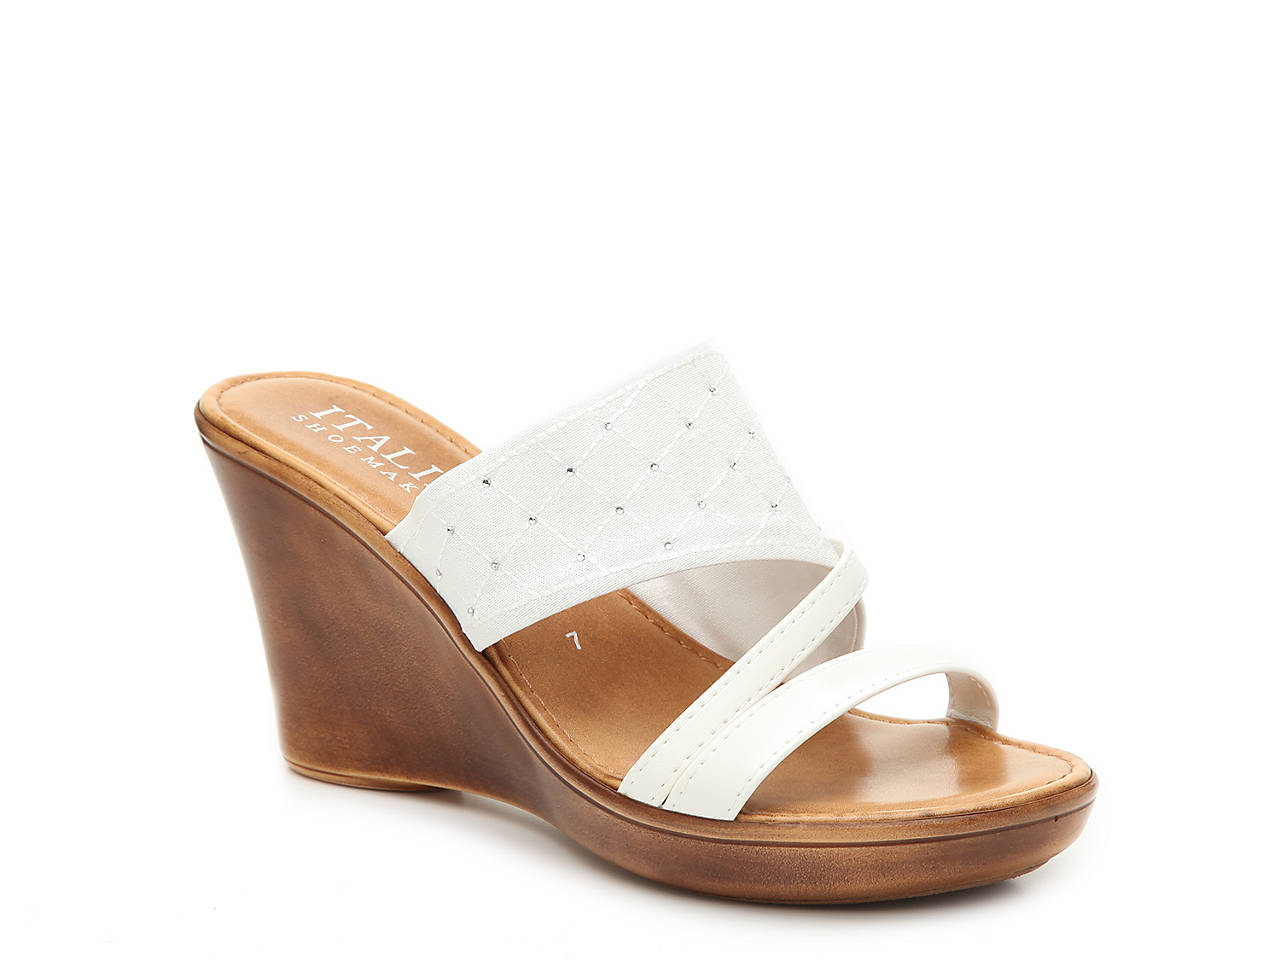 9112cc2e72c54 Italian Shoemakers Tiia Wedge Sandal Women s Shoes